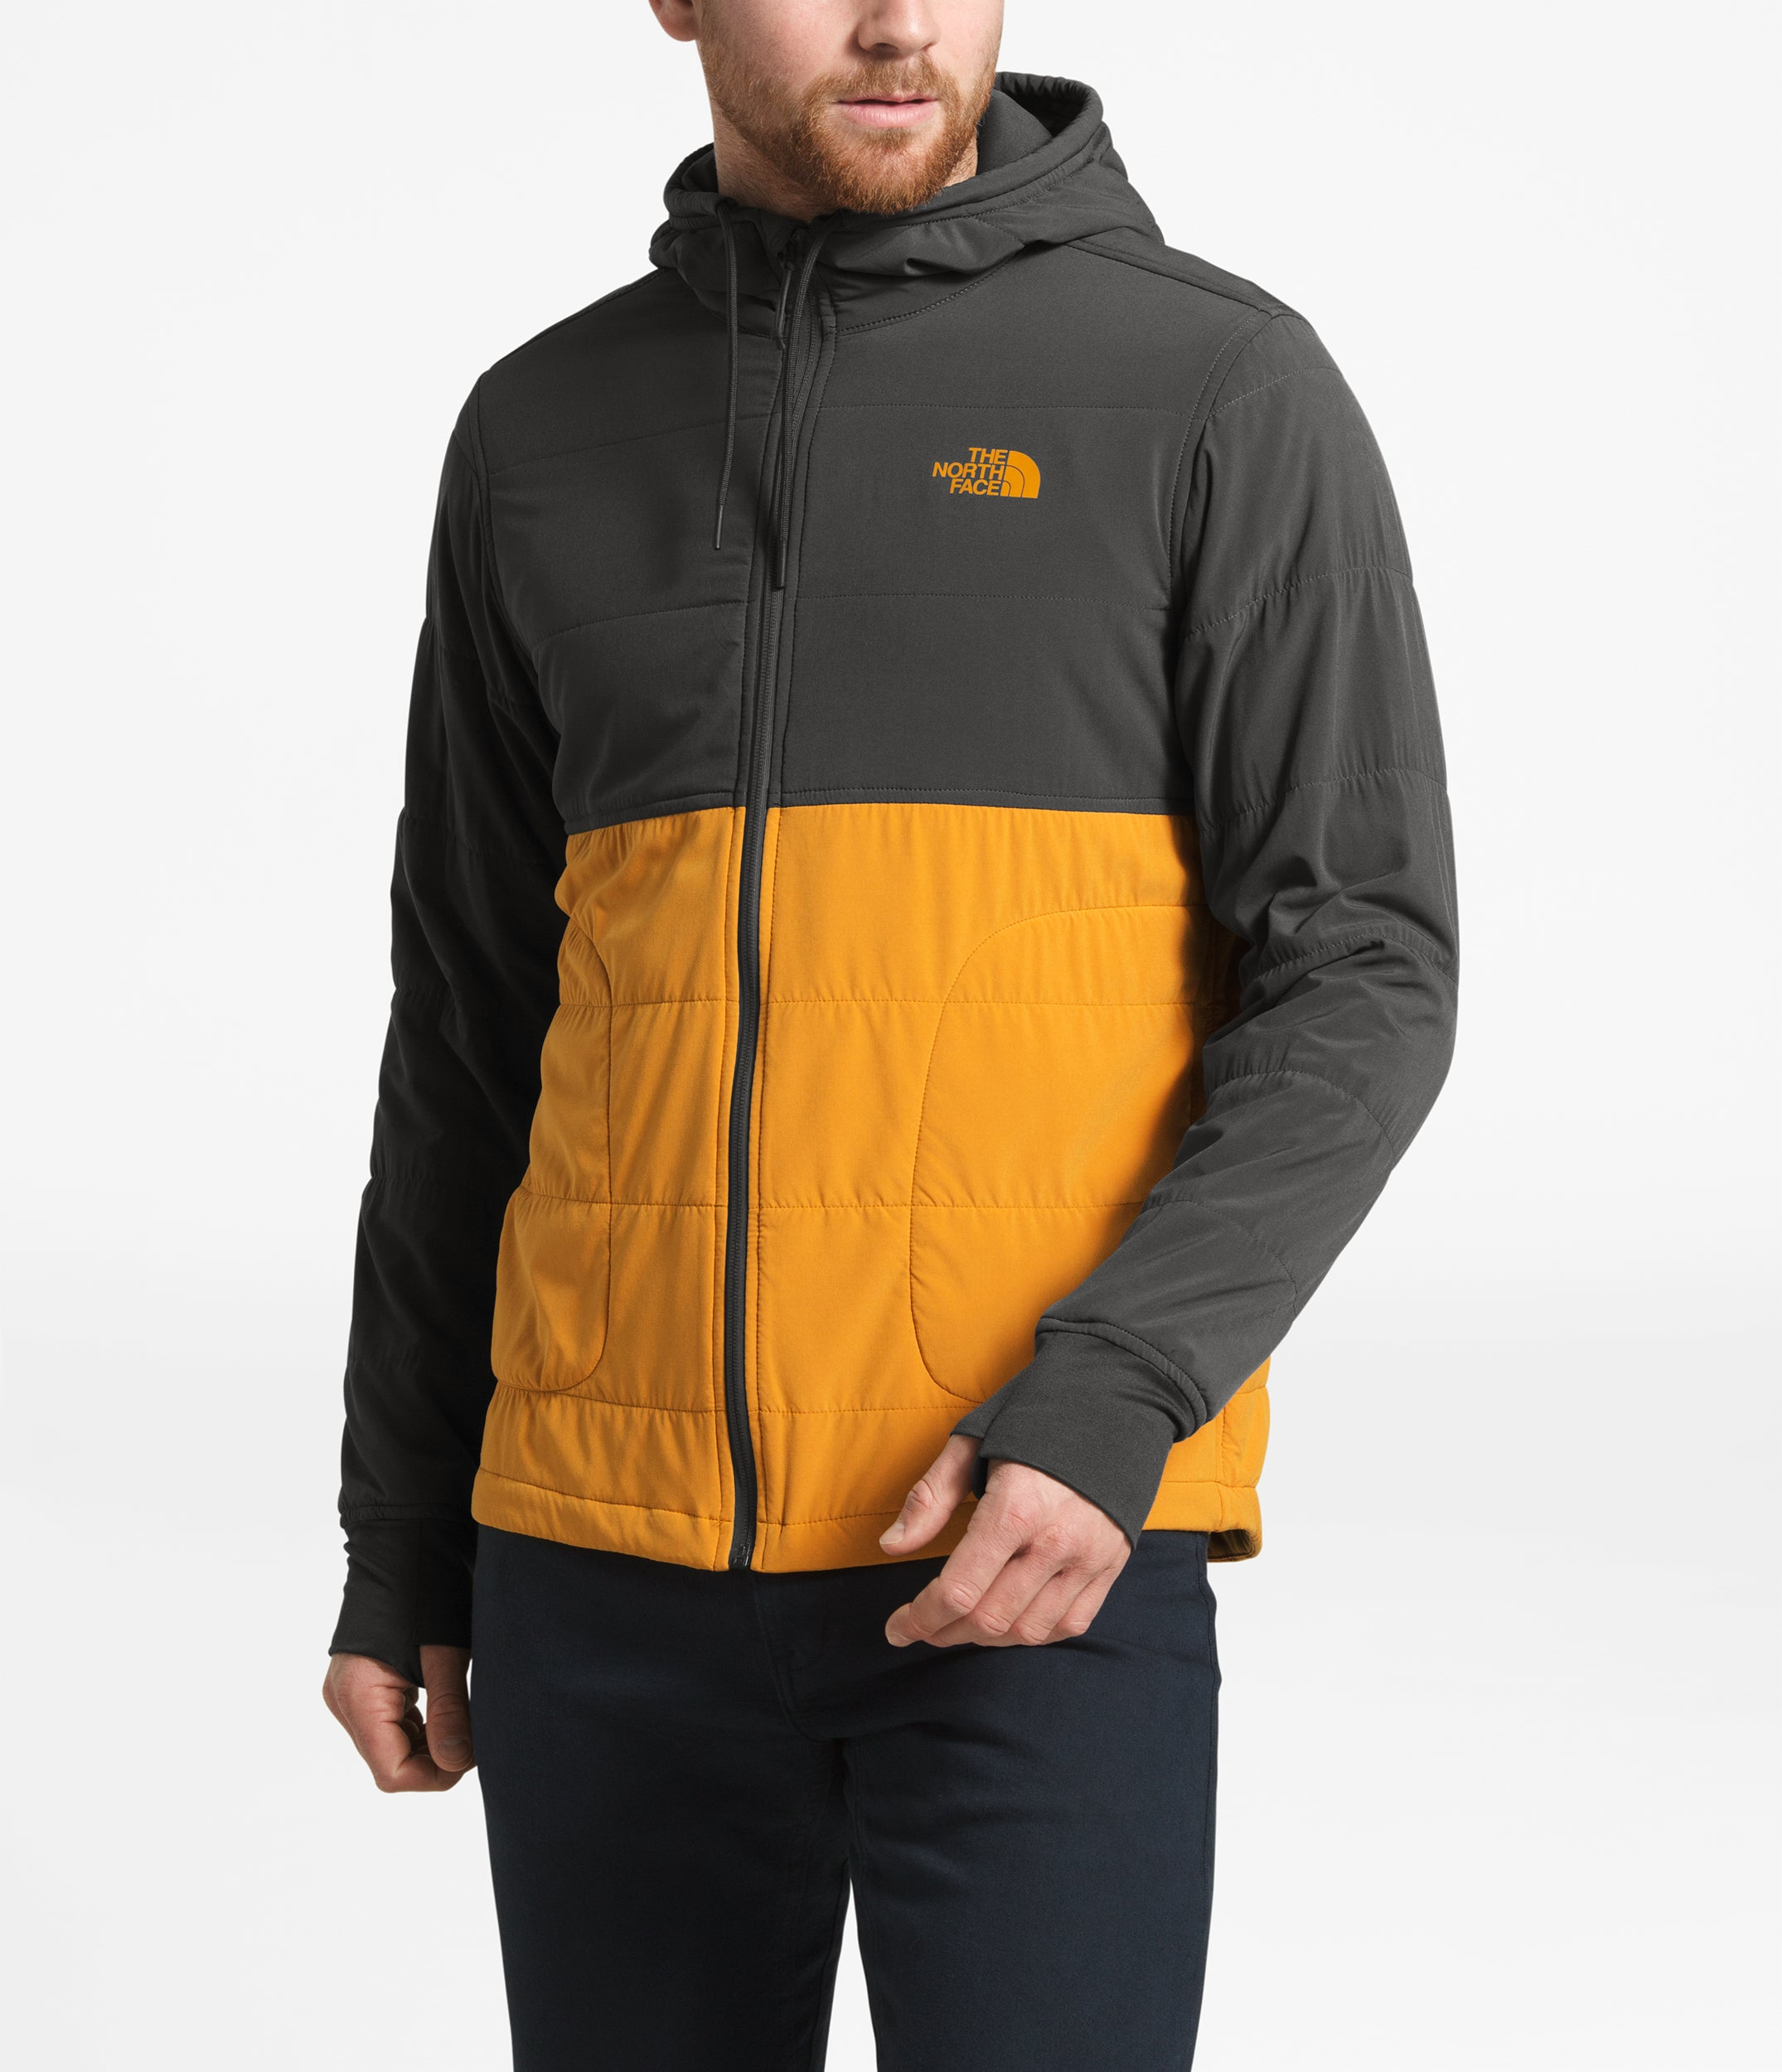 529a0e6b5 The North Face Mountain Sweatshirt 2.0 Yellow | Chicago City Sports